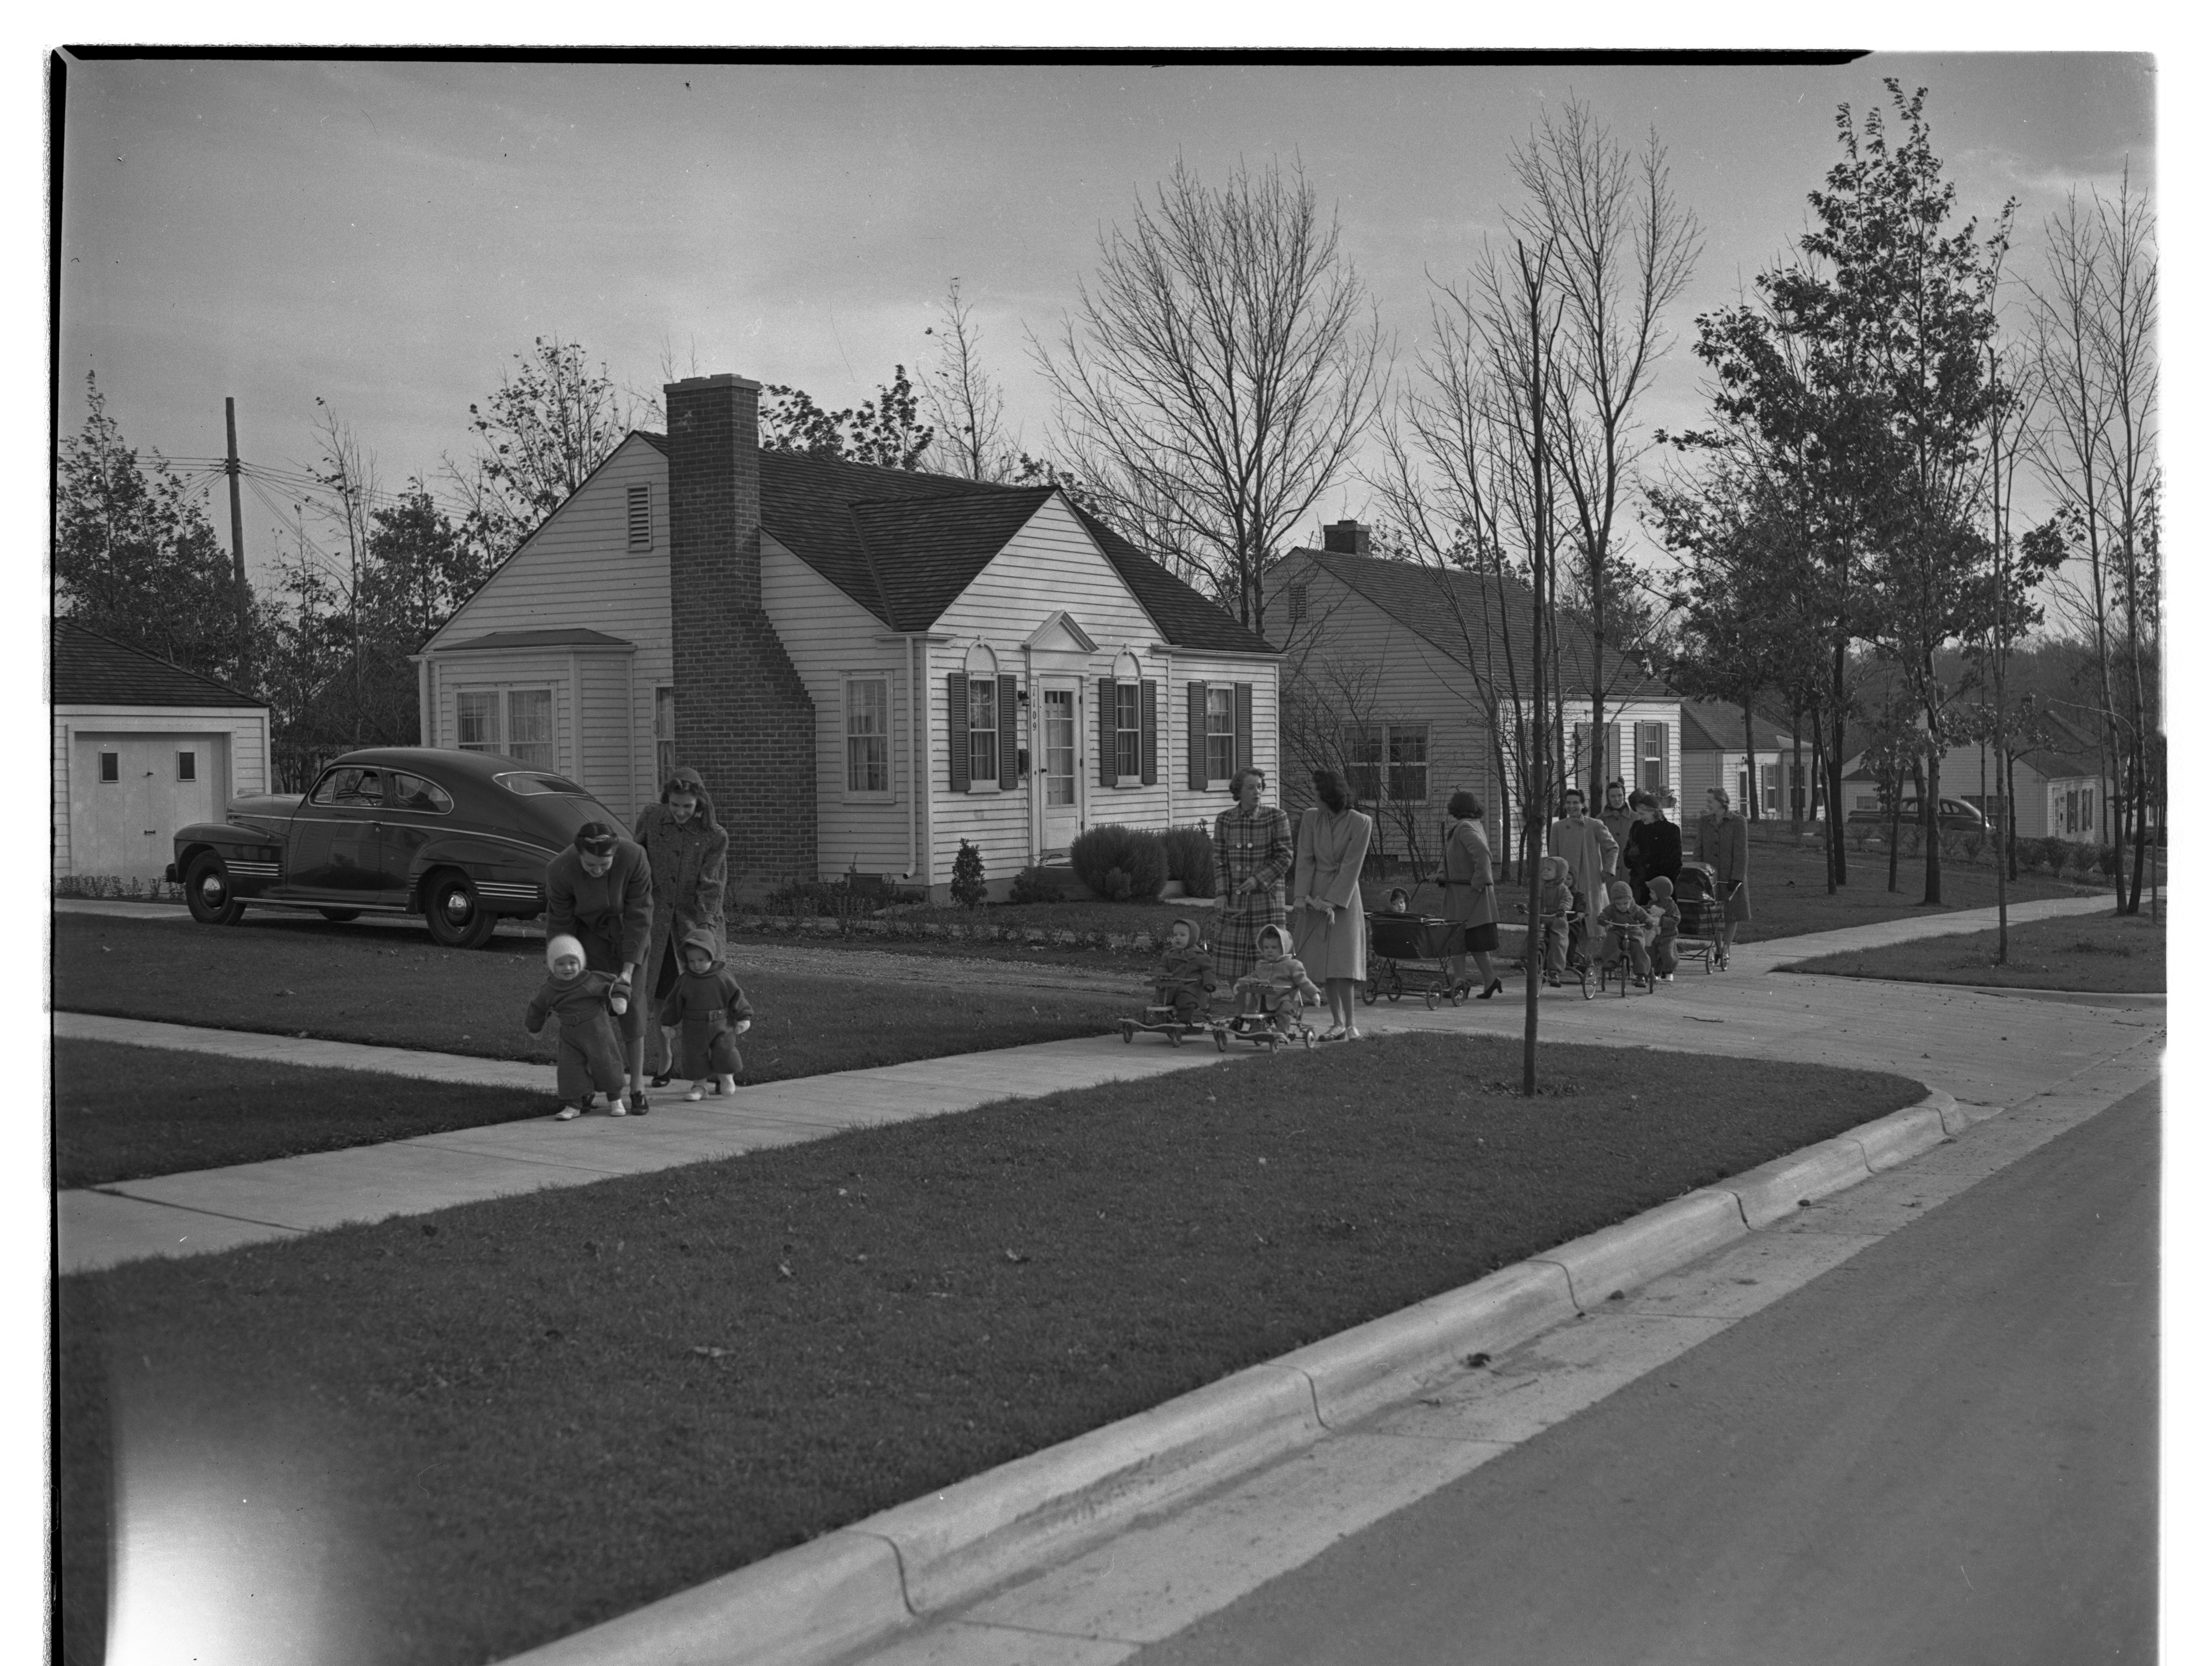 Mothers with their children on Birk Avenue, Ann Arbor, November 1941 image